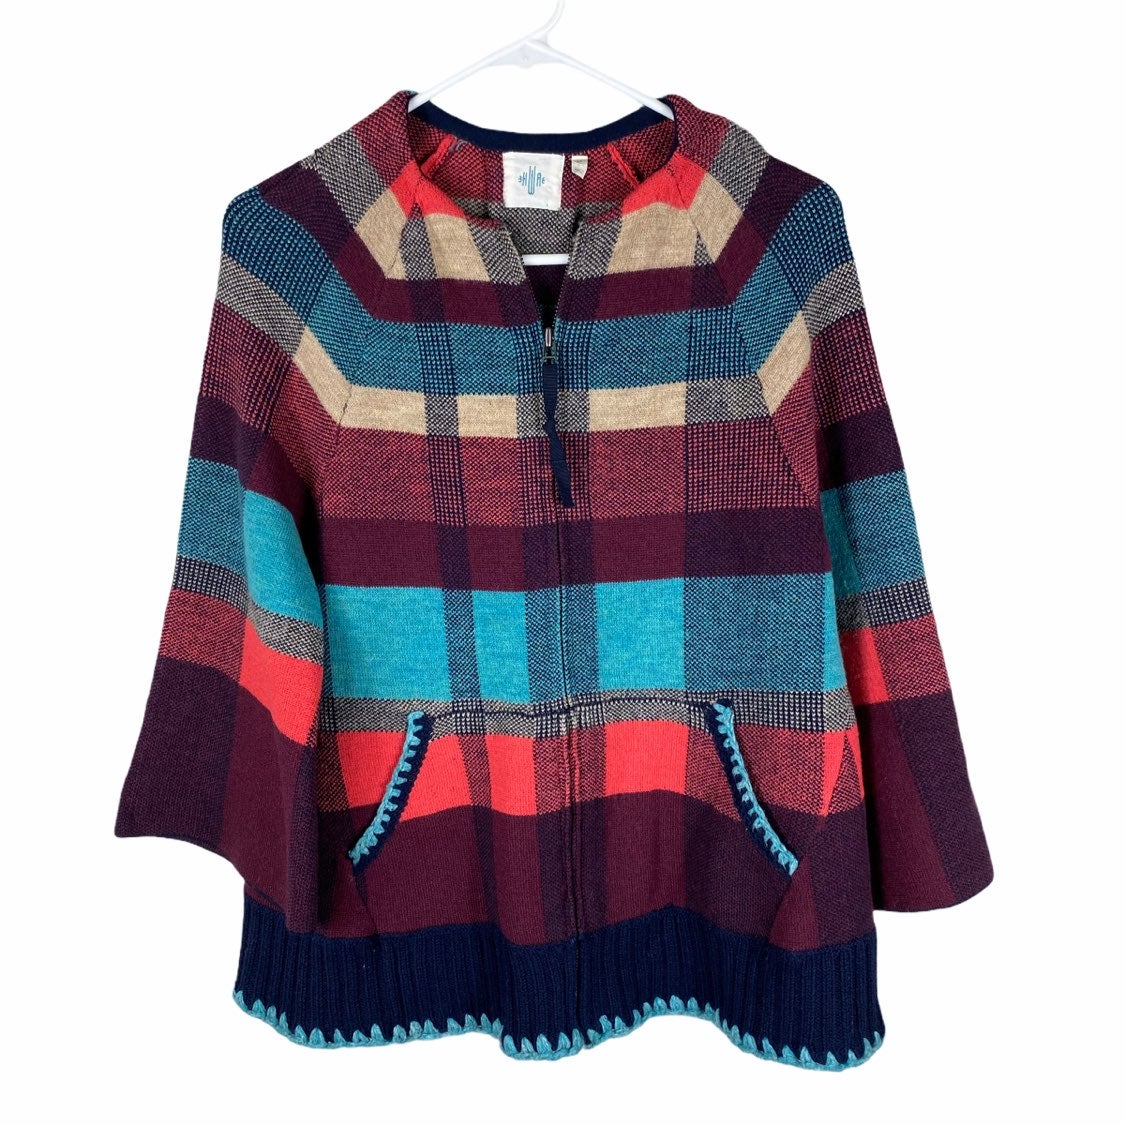 Anthropologie wool jacket xs colorful